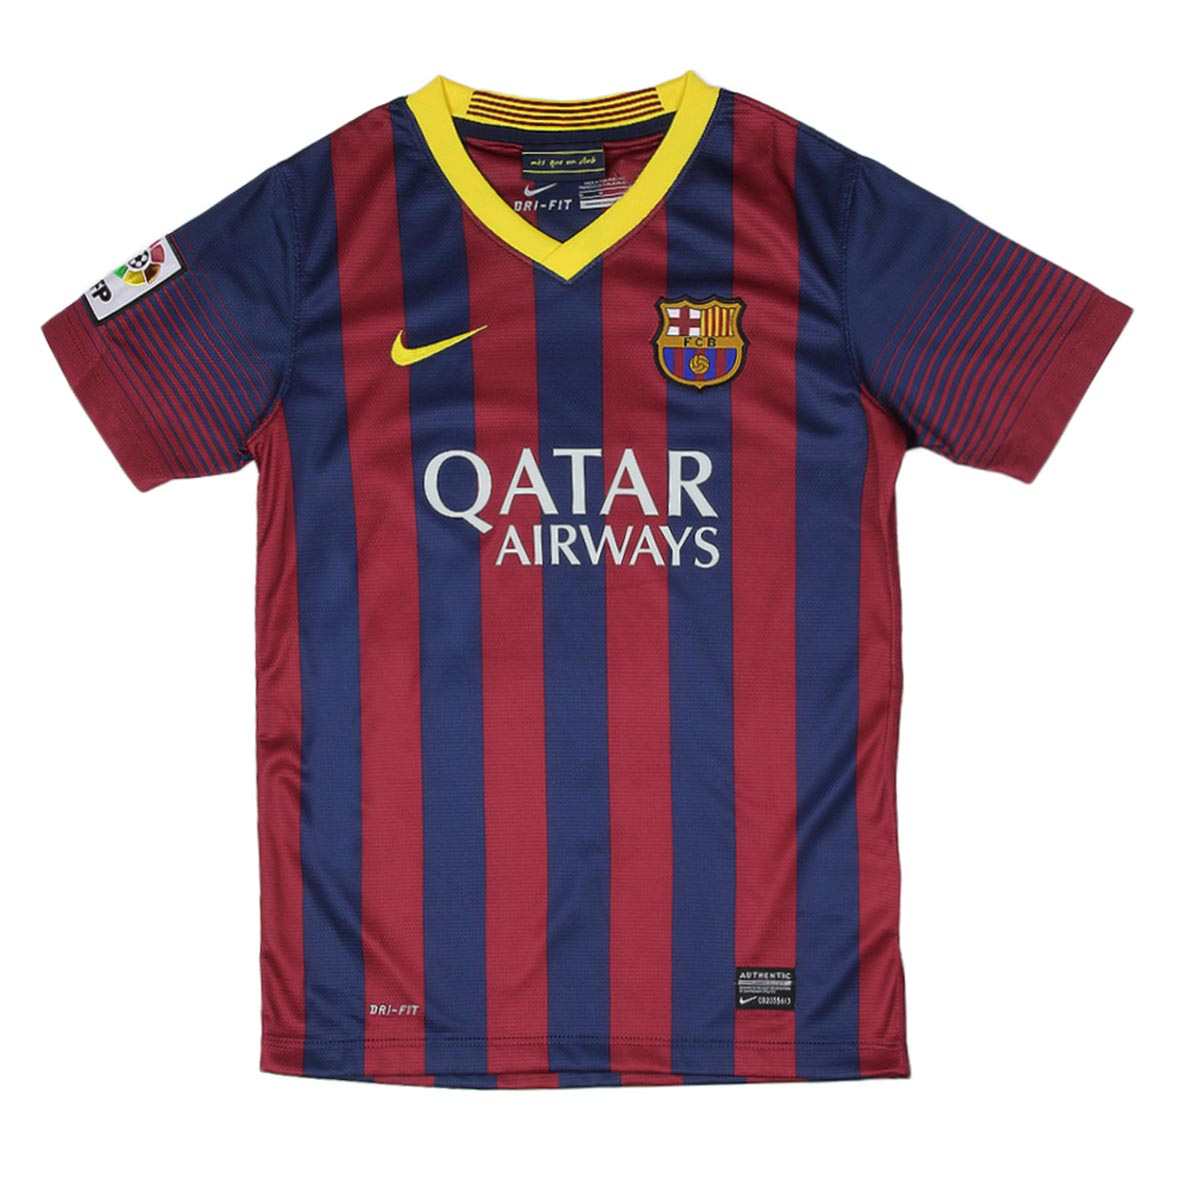 575d52300 Buy Nike FC Barcelona Home Jersey 2013 14 (Boys - Junior) Online